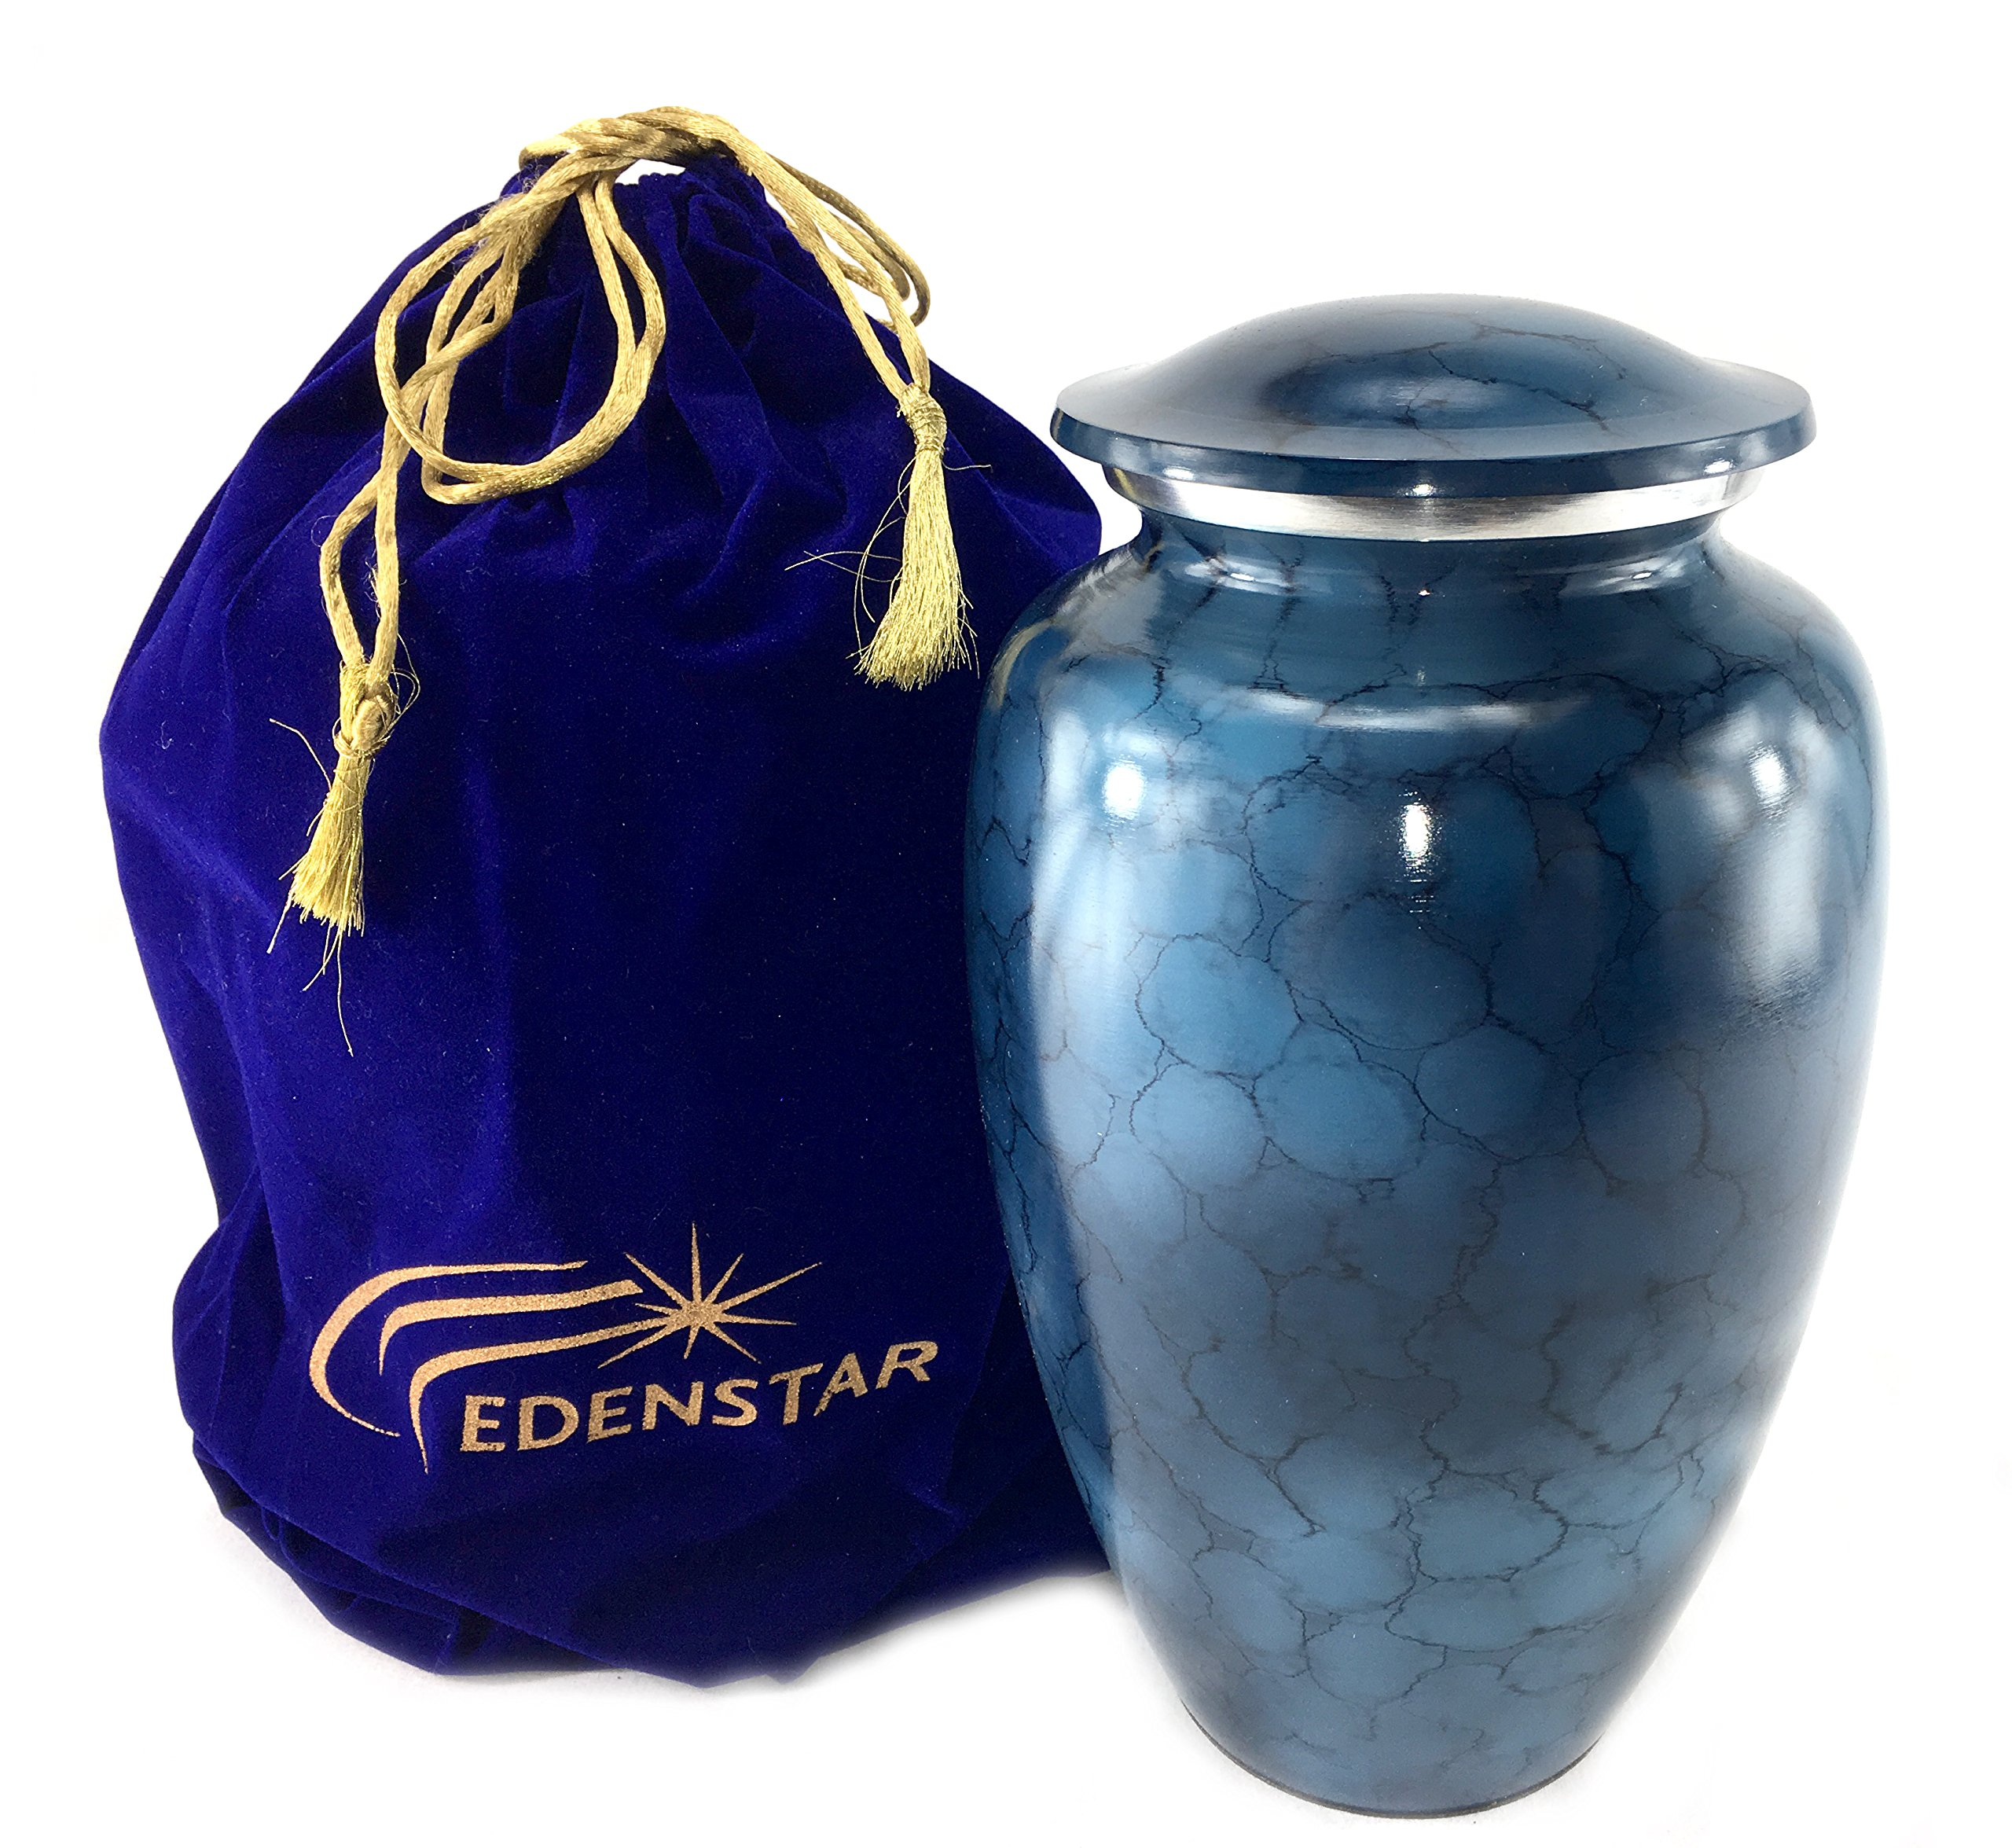 EDENSTAR NEXTG Premium Quality Classic Cremation Urn with Unique Design - Adult Funeral Memorial Urn for Human Ashes Handmade Solid Vase Handcrafted Perfection Engraved